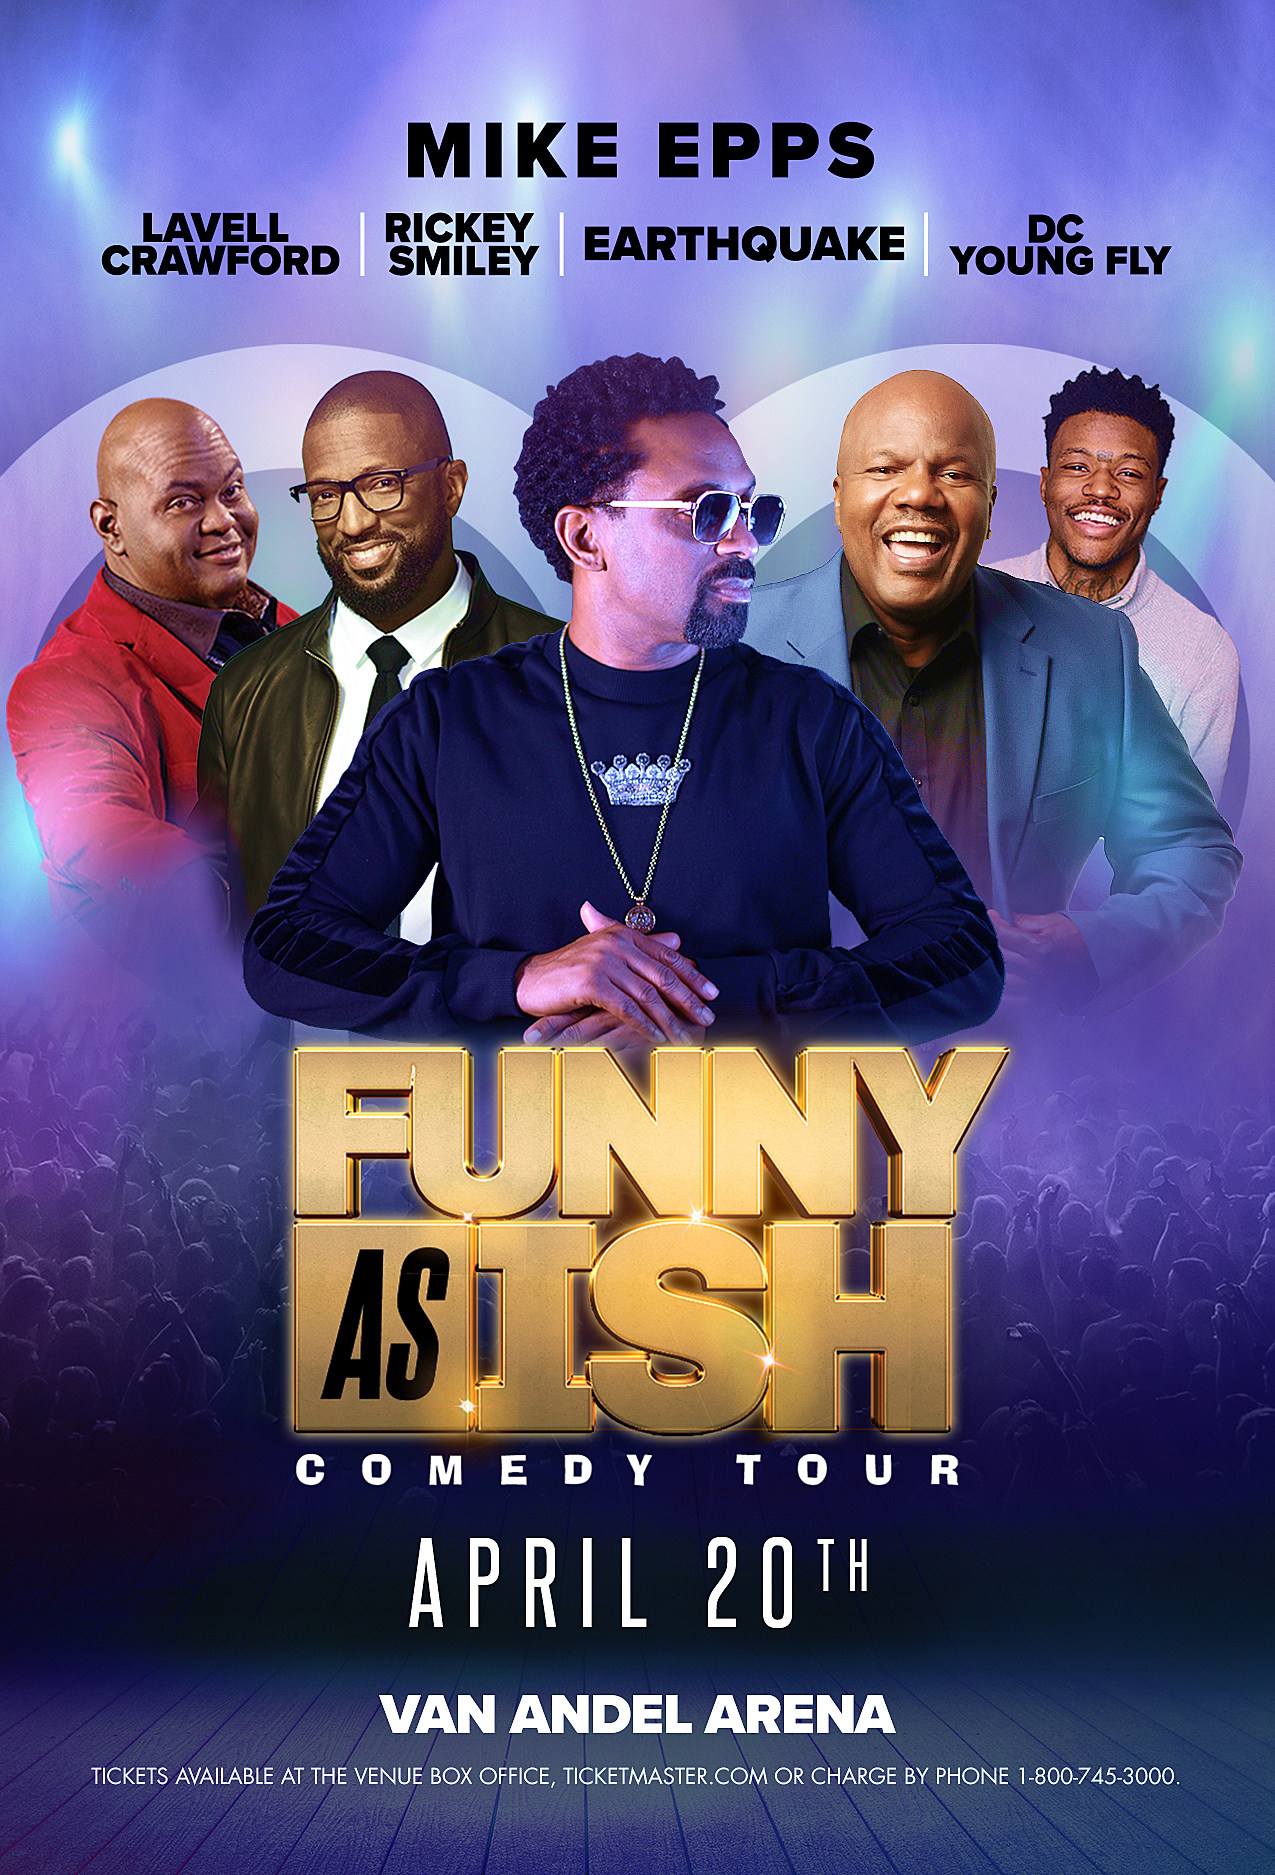 Funny As Ish Tour Dates 2019 : funny, dates, Magic, 104.9, Welcomes, Funny